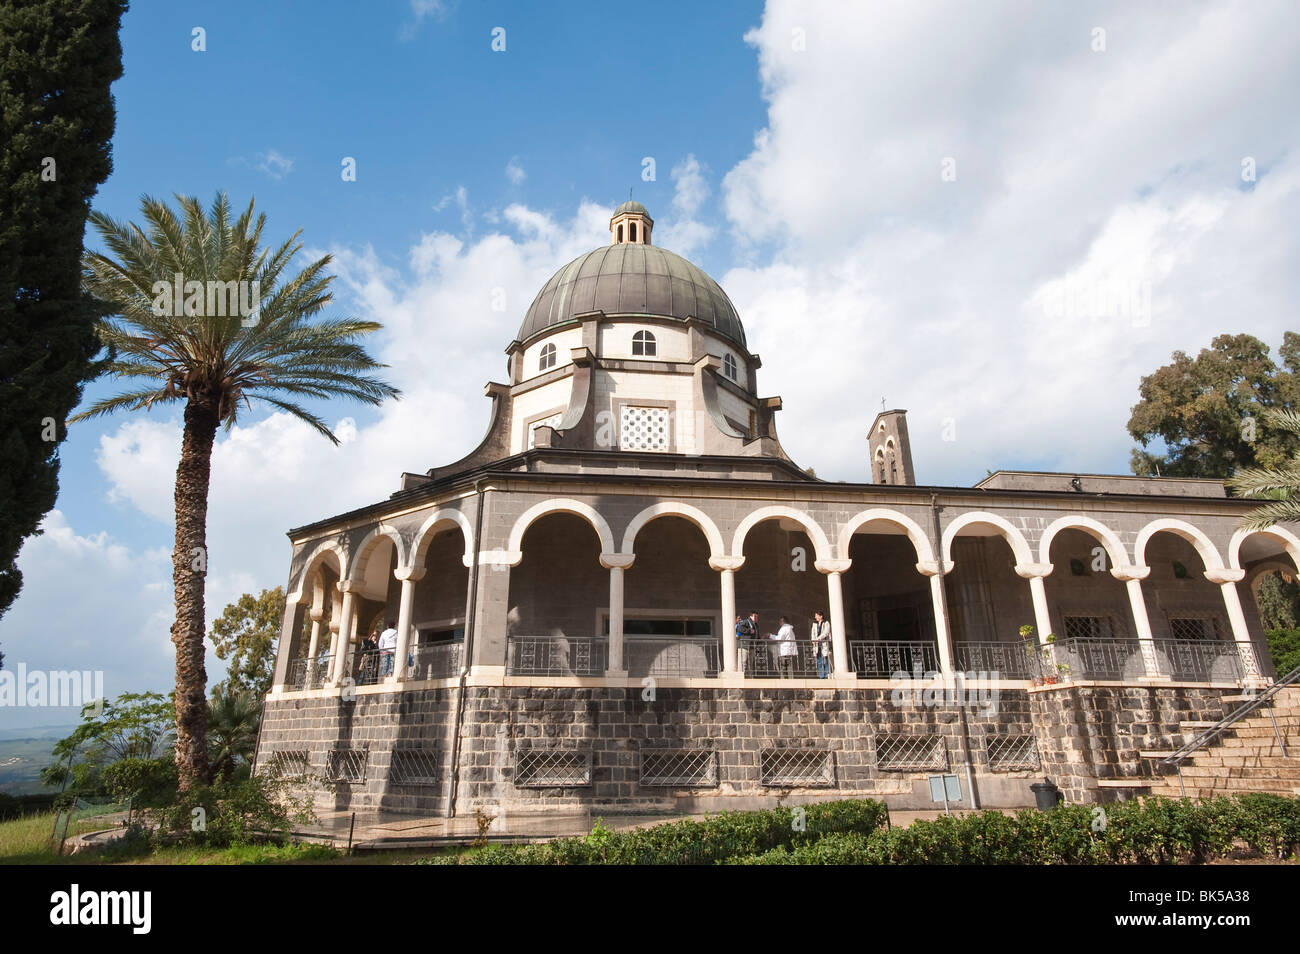 Church of the Beatitudes, Galilee, Israel, Middle East Stock Photo